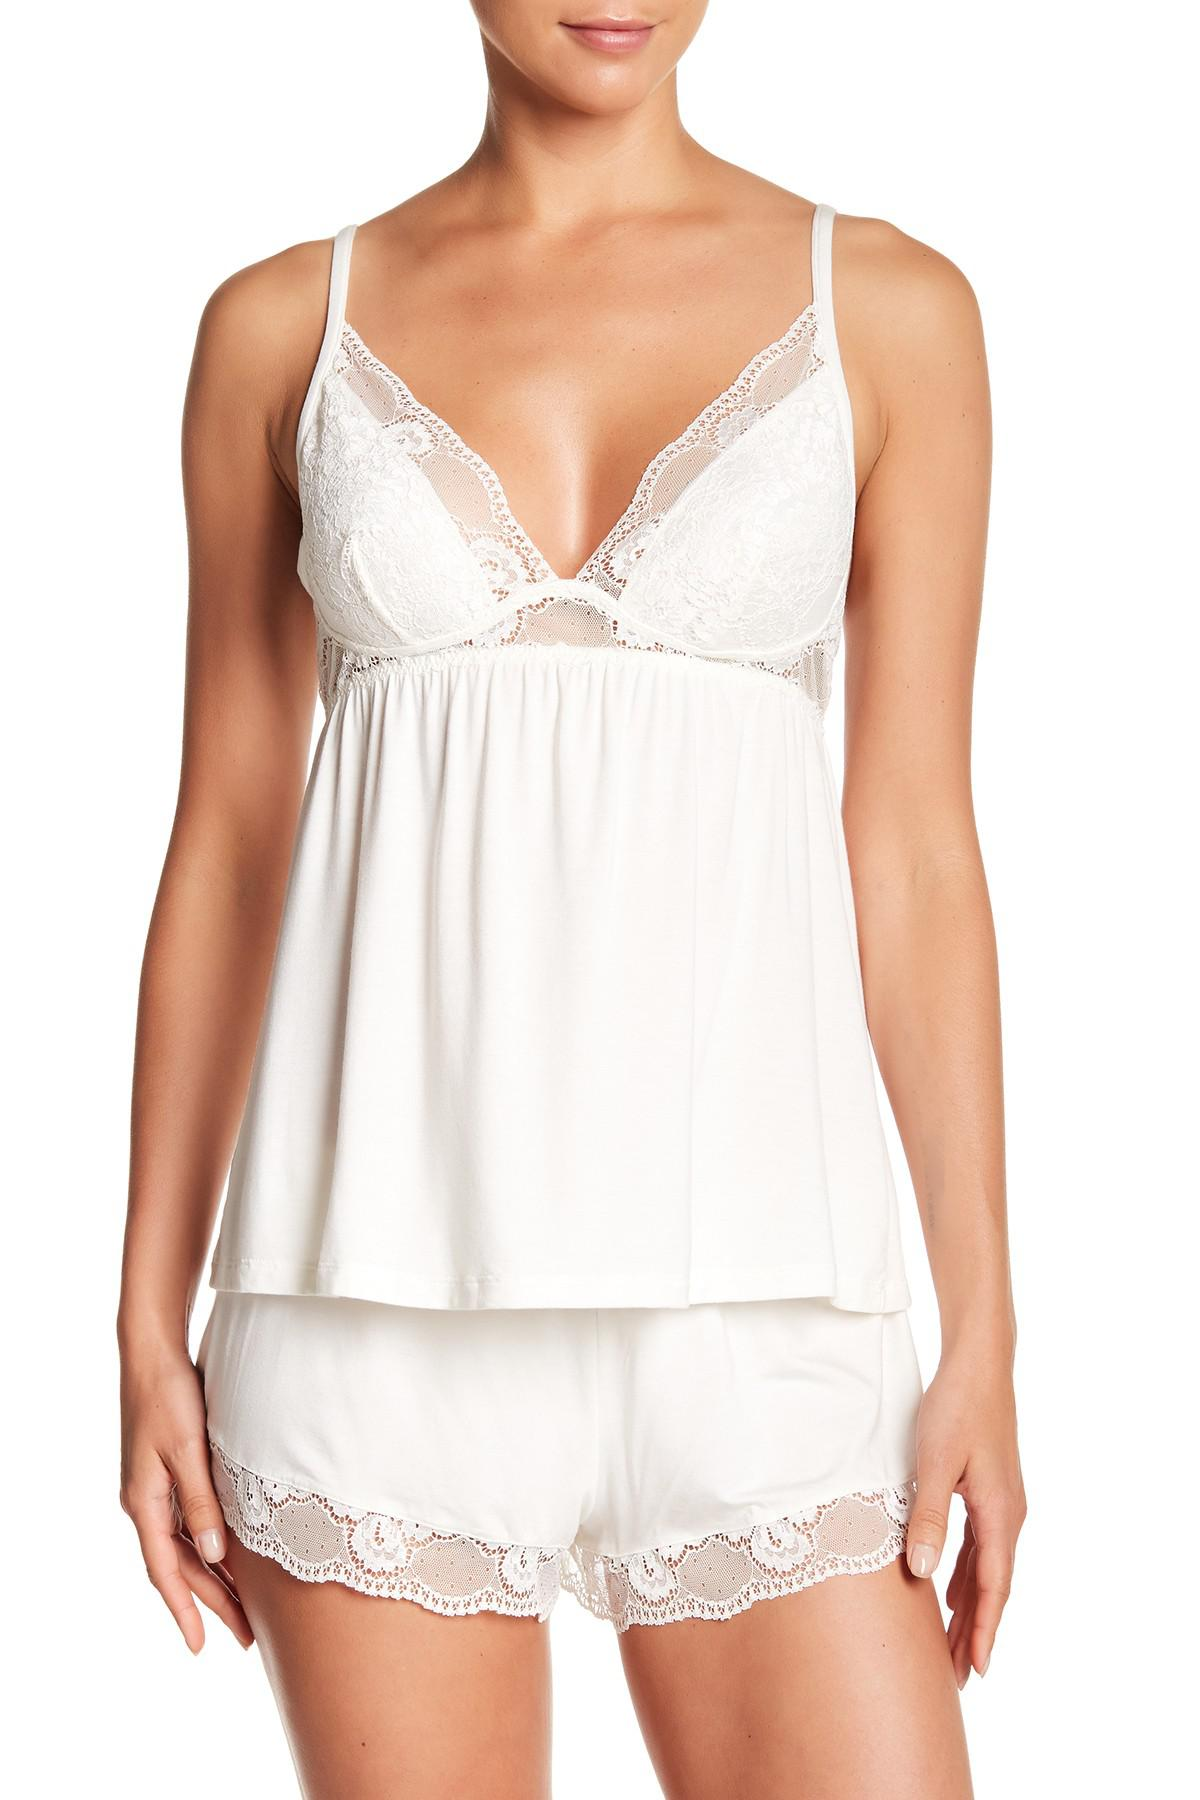 7f24943d3 Lyst - Eberjey Noor Lace Trim Cami in White